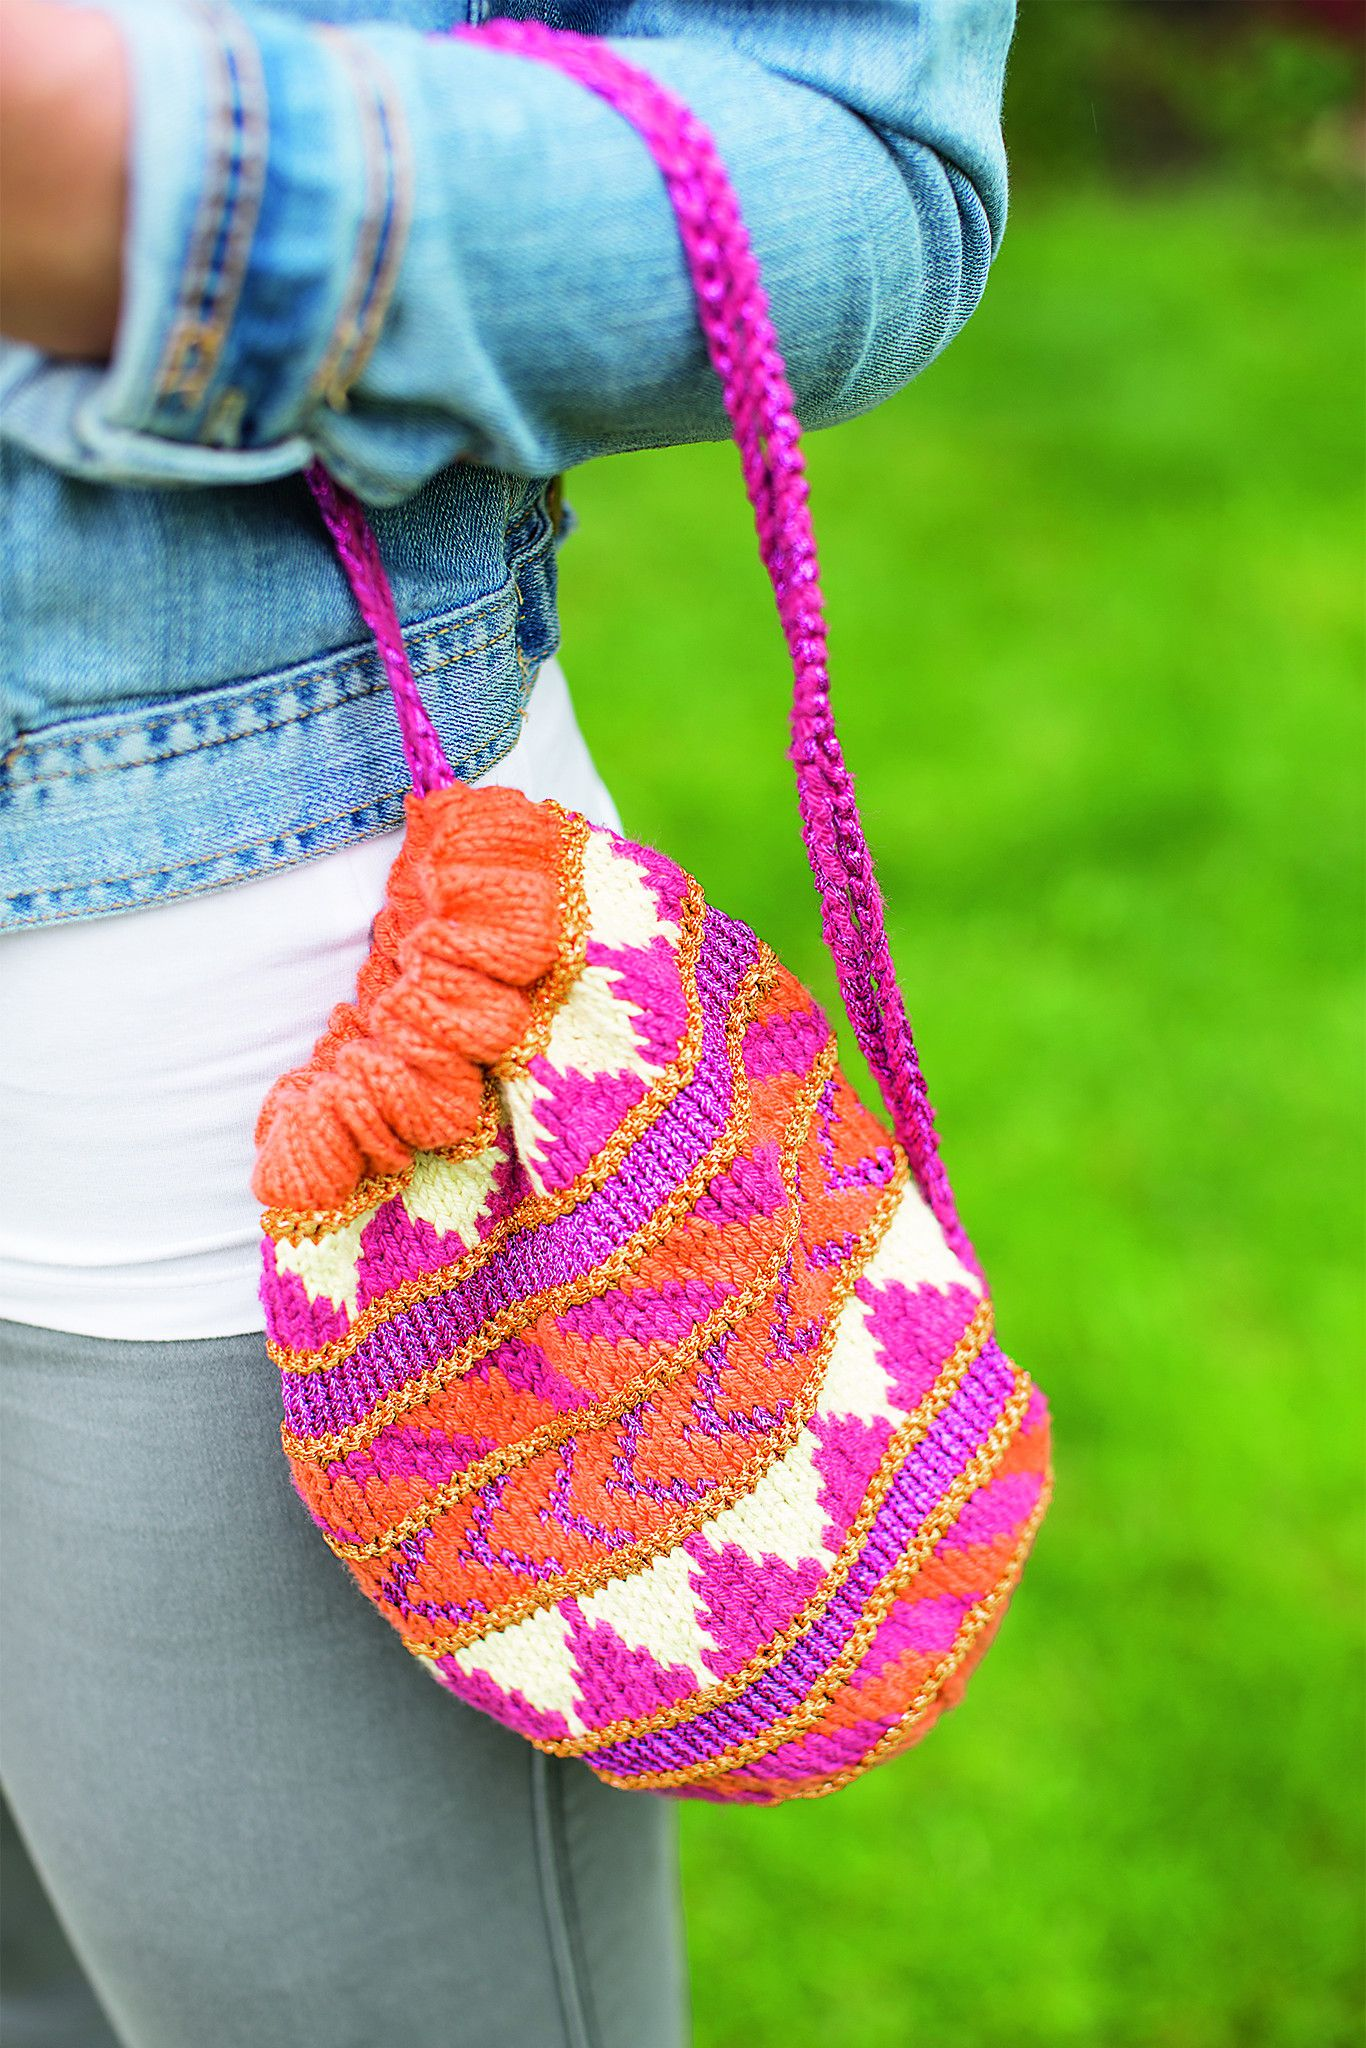 Patterned Drawstring Bag Knitting Pattern | Knitting patterns and ...